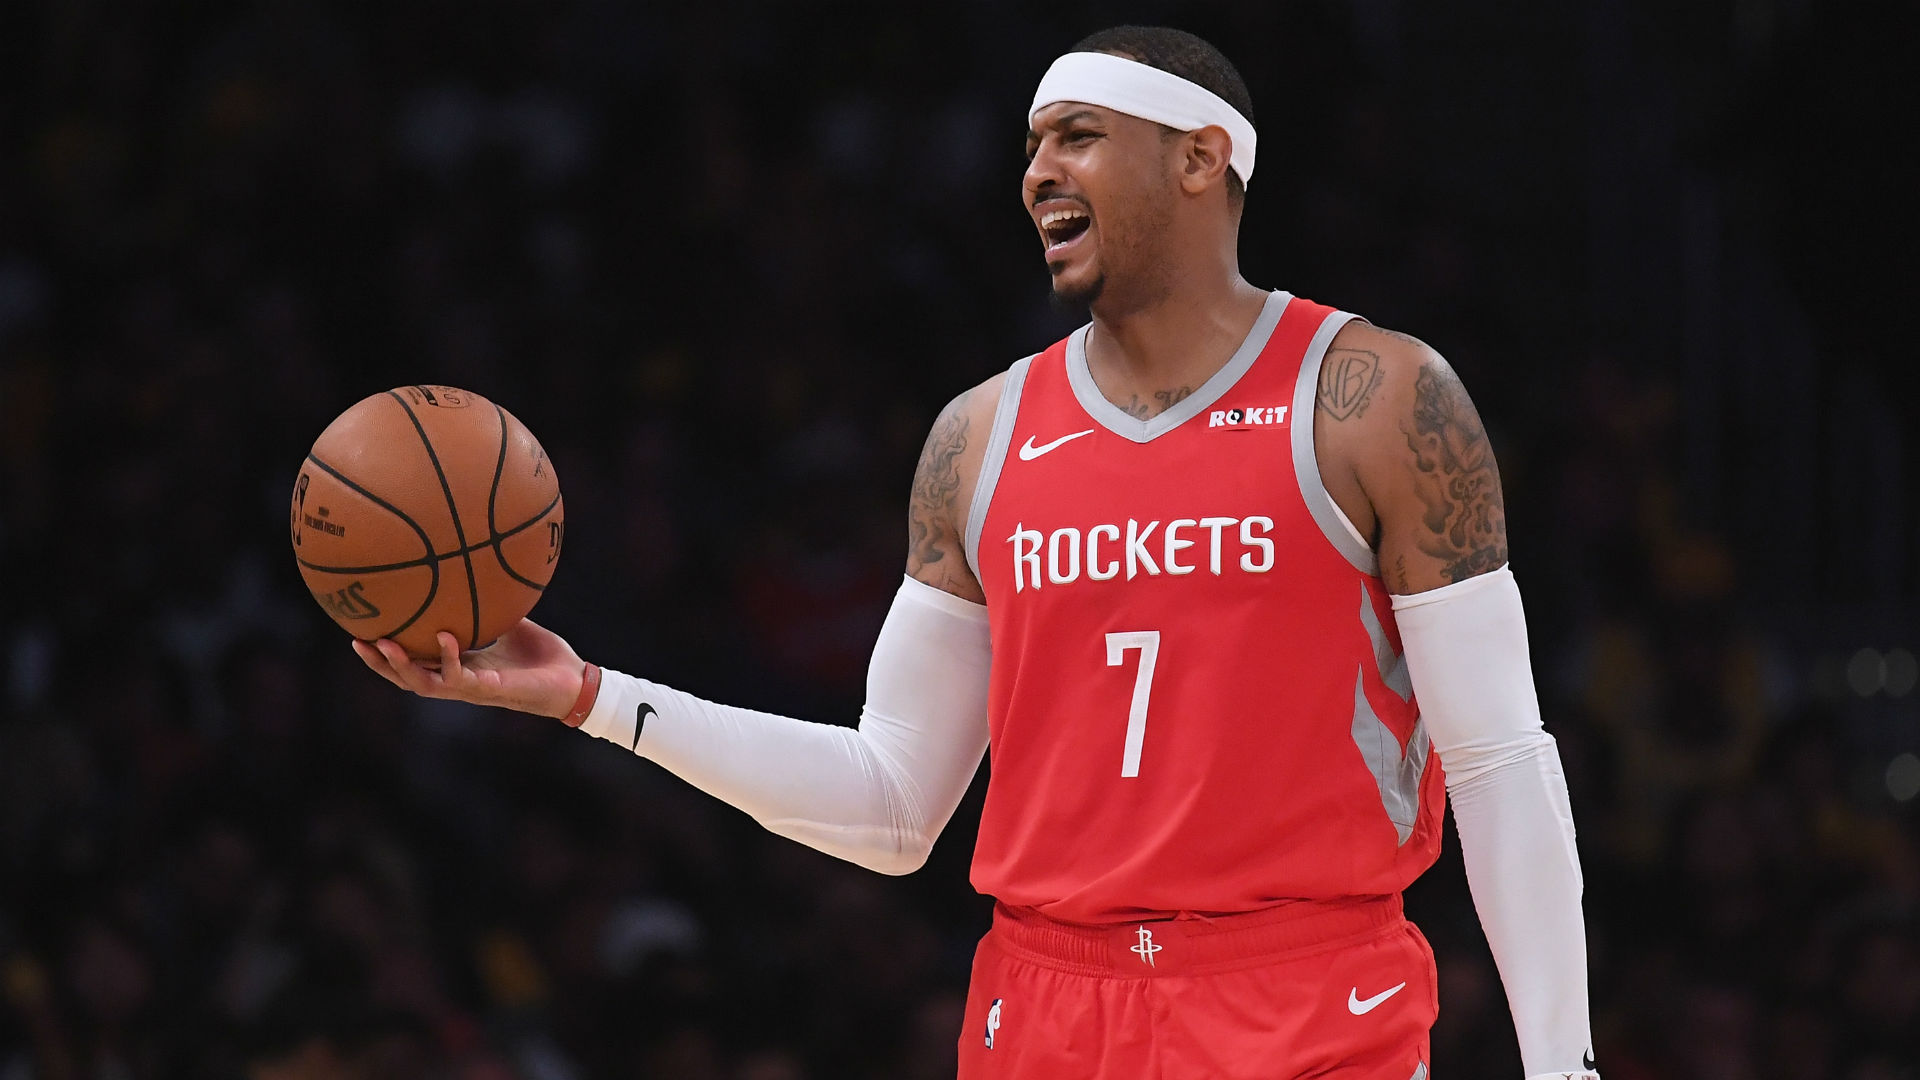 Rockets Trade Carmelo Anthony To The Bulls